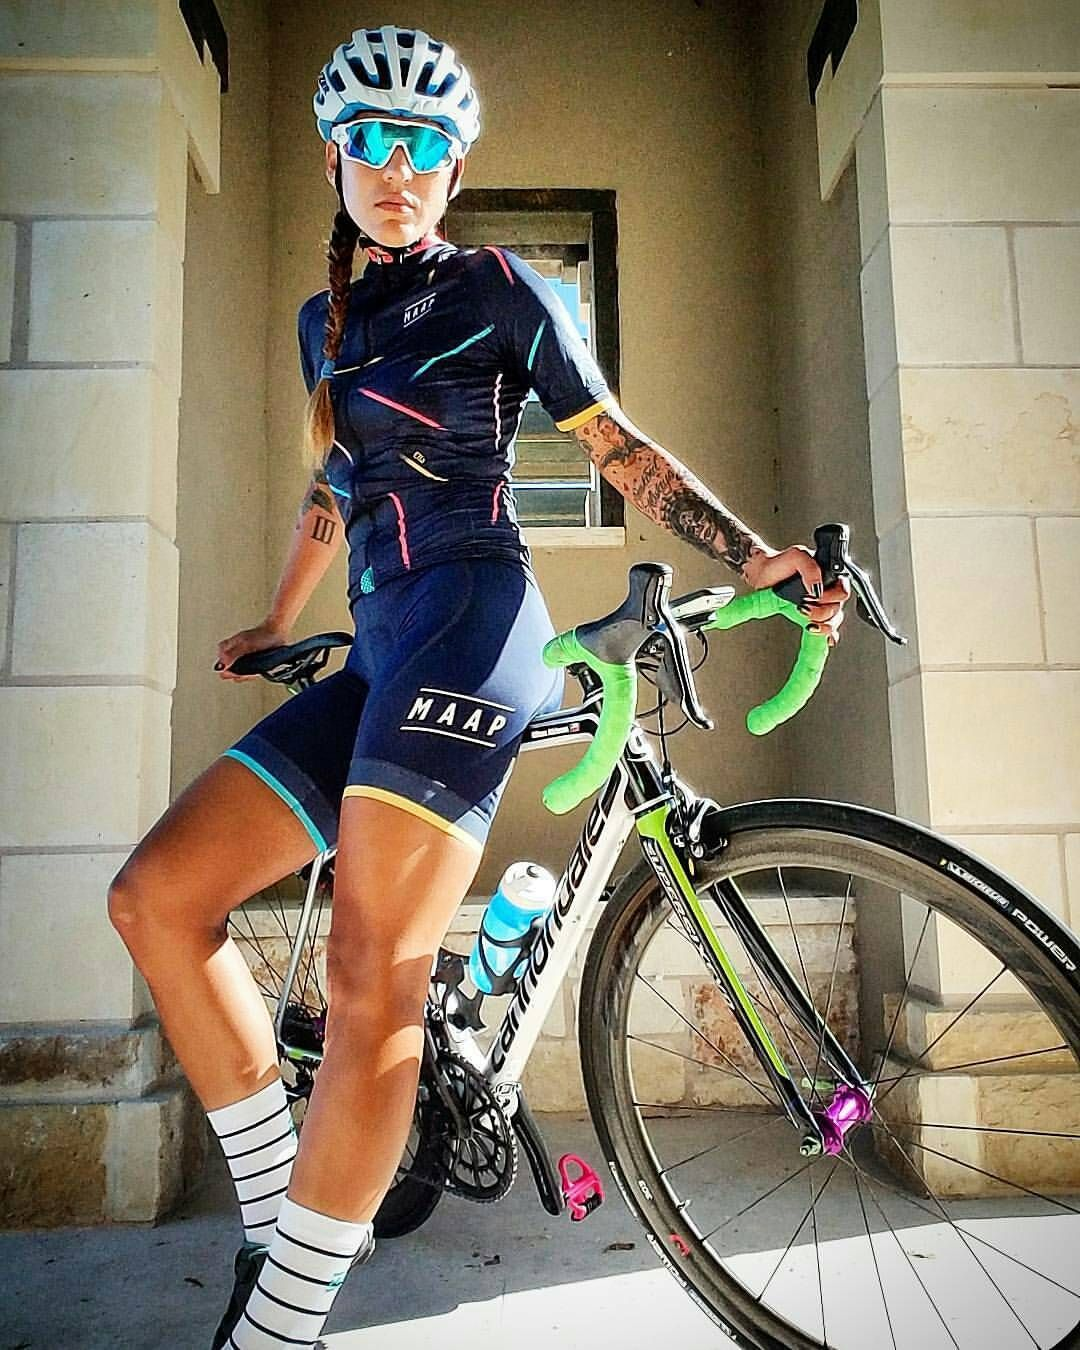 PUT ON CYCLING CLOTHES